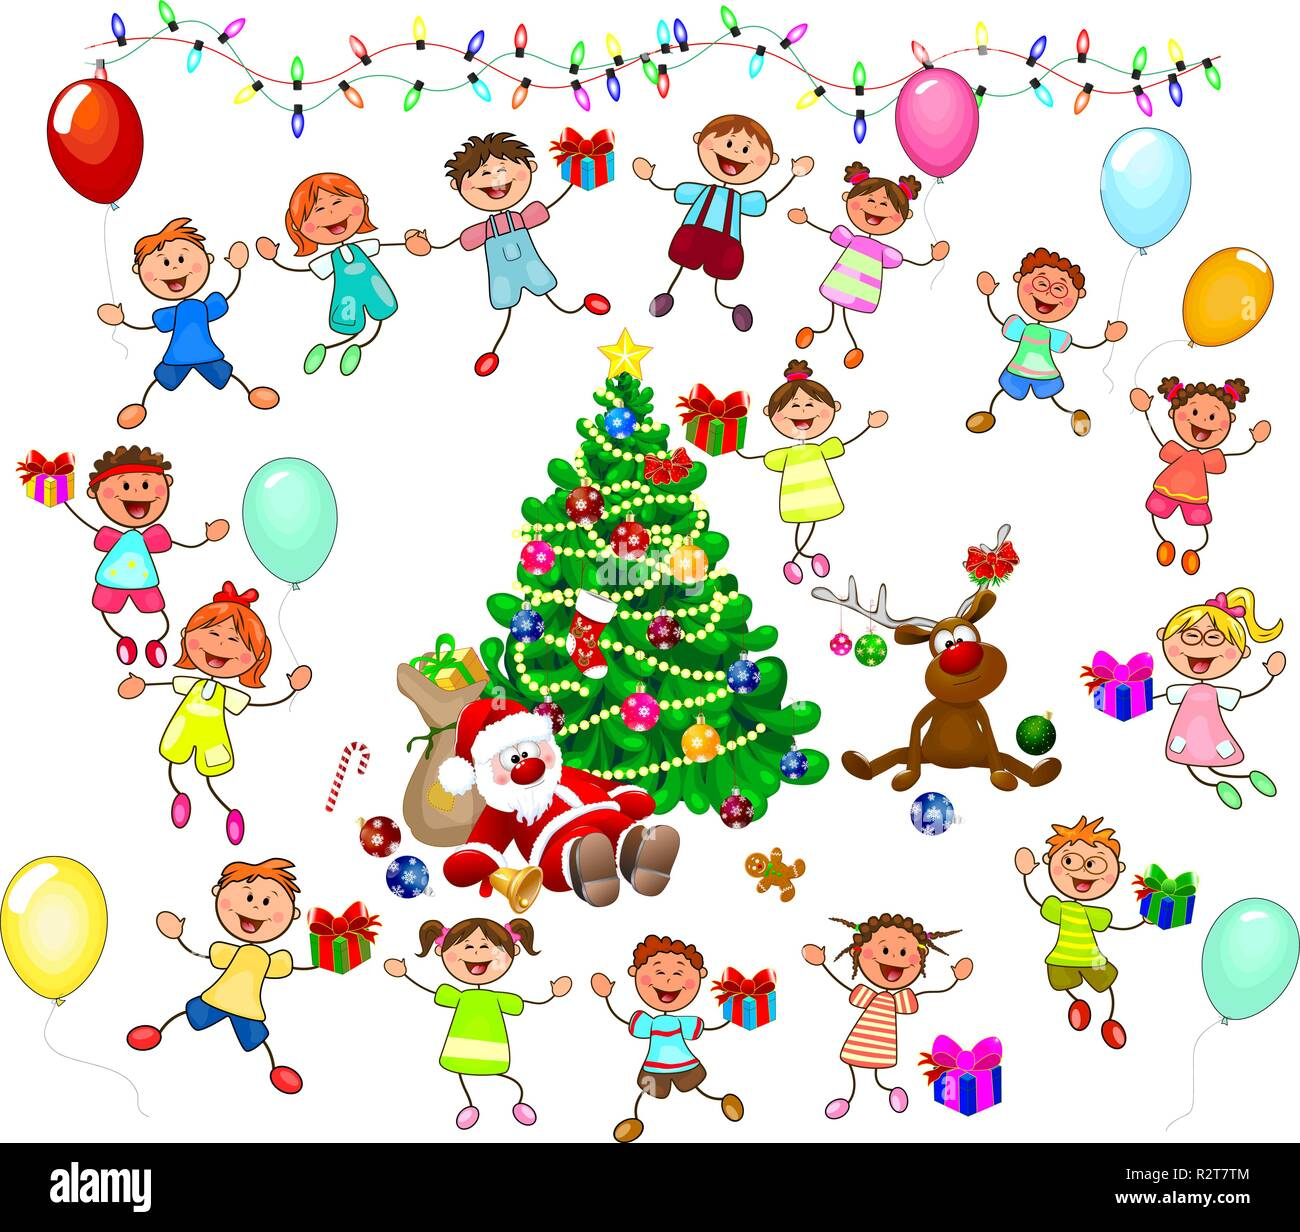 Joyful little children and Santa near the Christmas tree. Santa, deer and children celebrate Christmas. A group of children with gifts. - Stock Vector